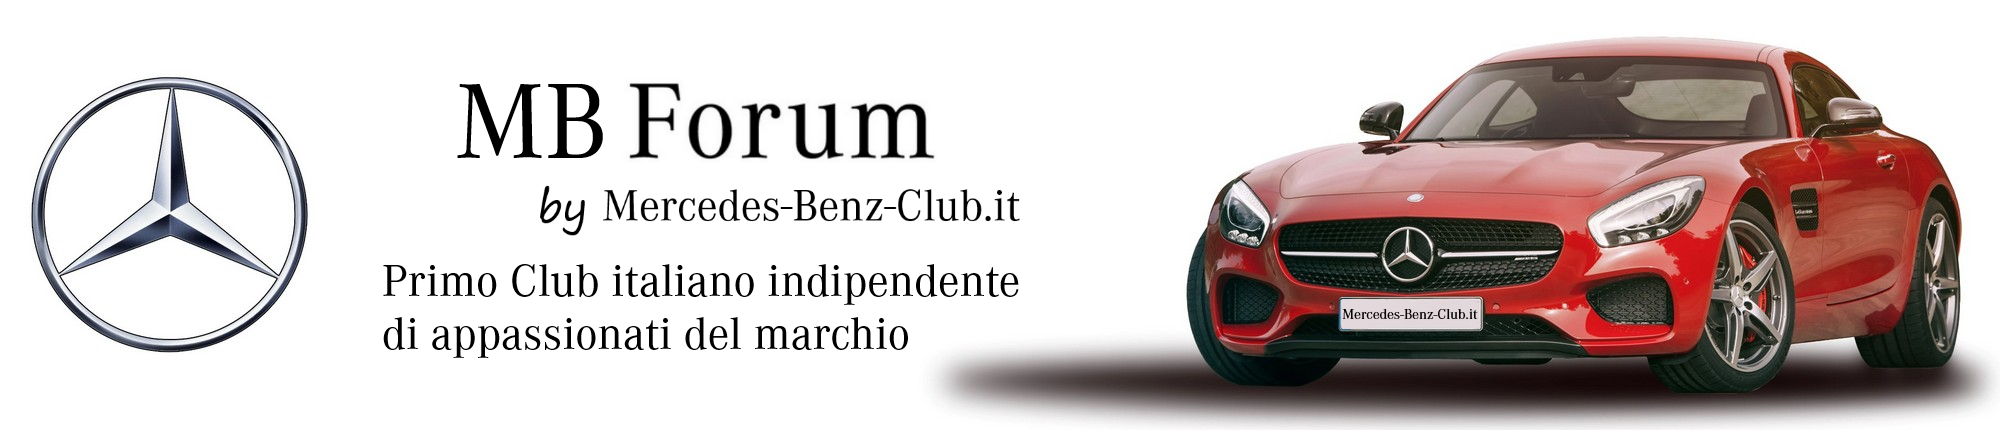 Forum del Mercedes-Benz-Club.it